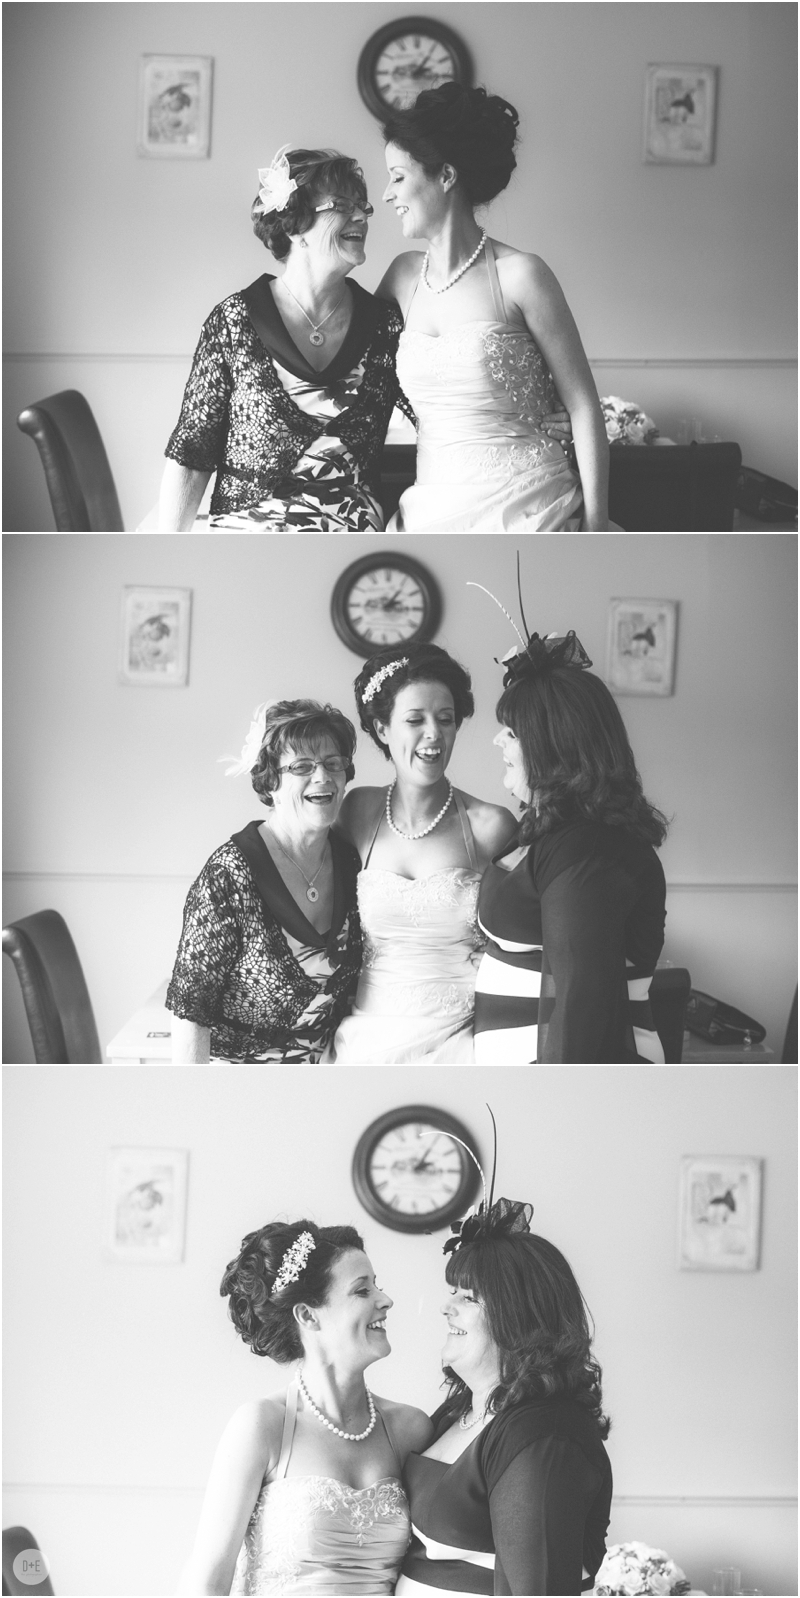 deanella.com-aisling+mary-wedding-55.jpg